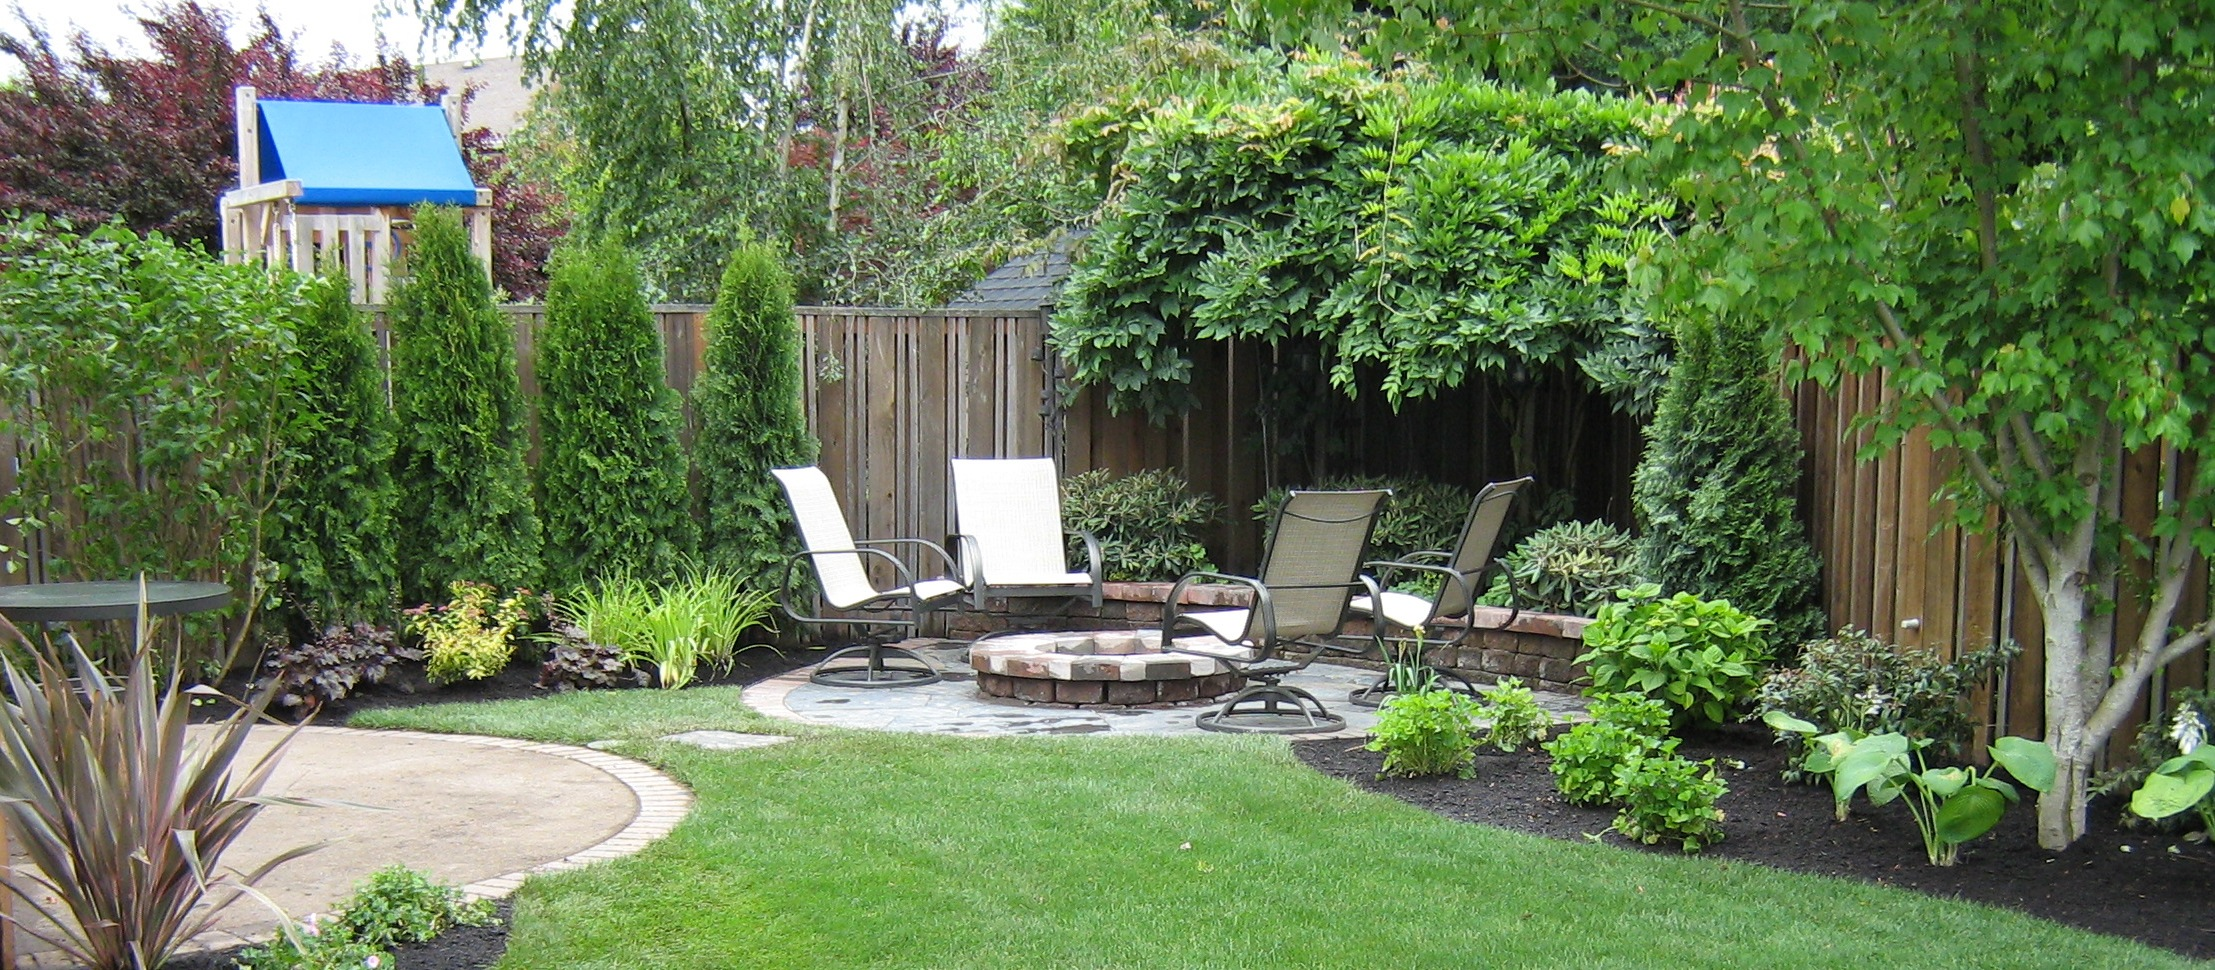 Backyard Flower Beds   Large And Beautiful Photos. Photo To Select Backyard  Flower Beds | Design Your Home